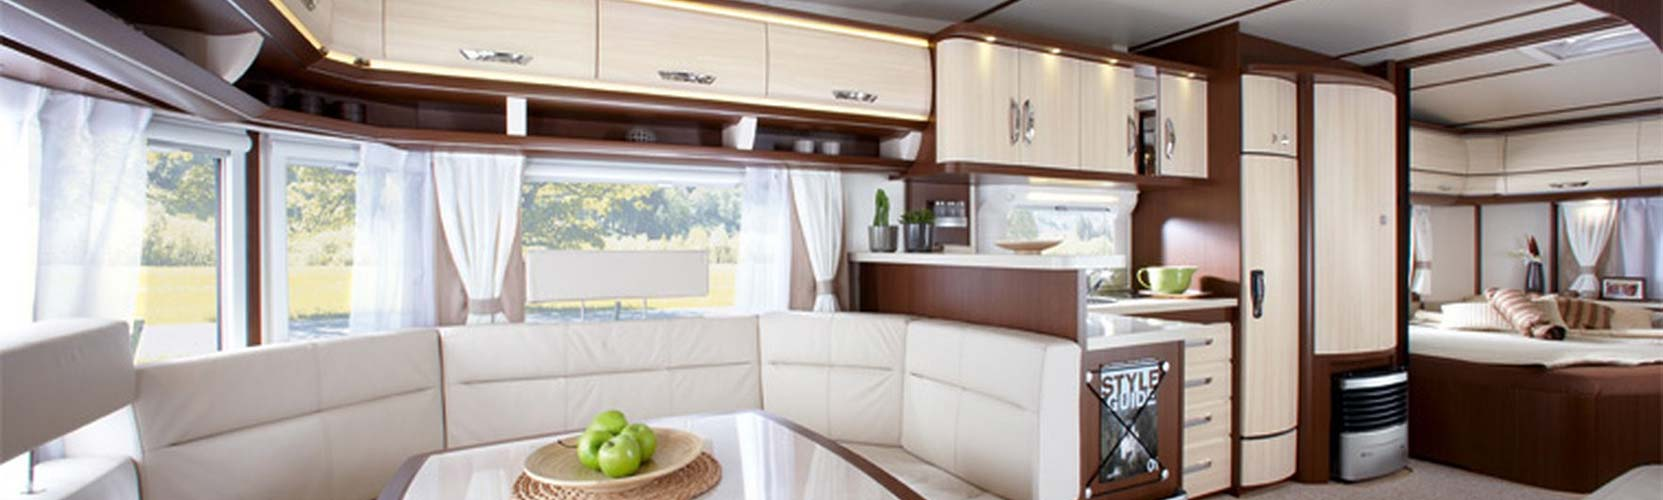 J & J Caravans and Motorhomes